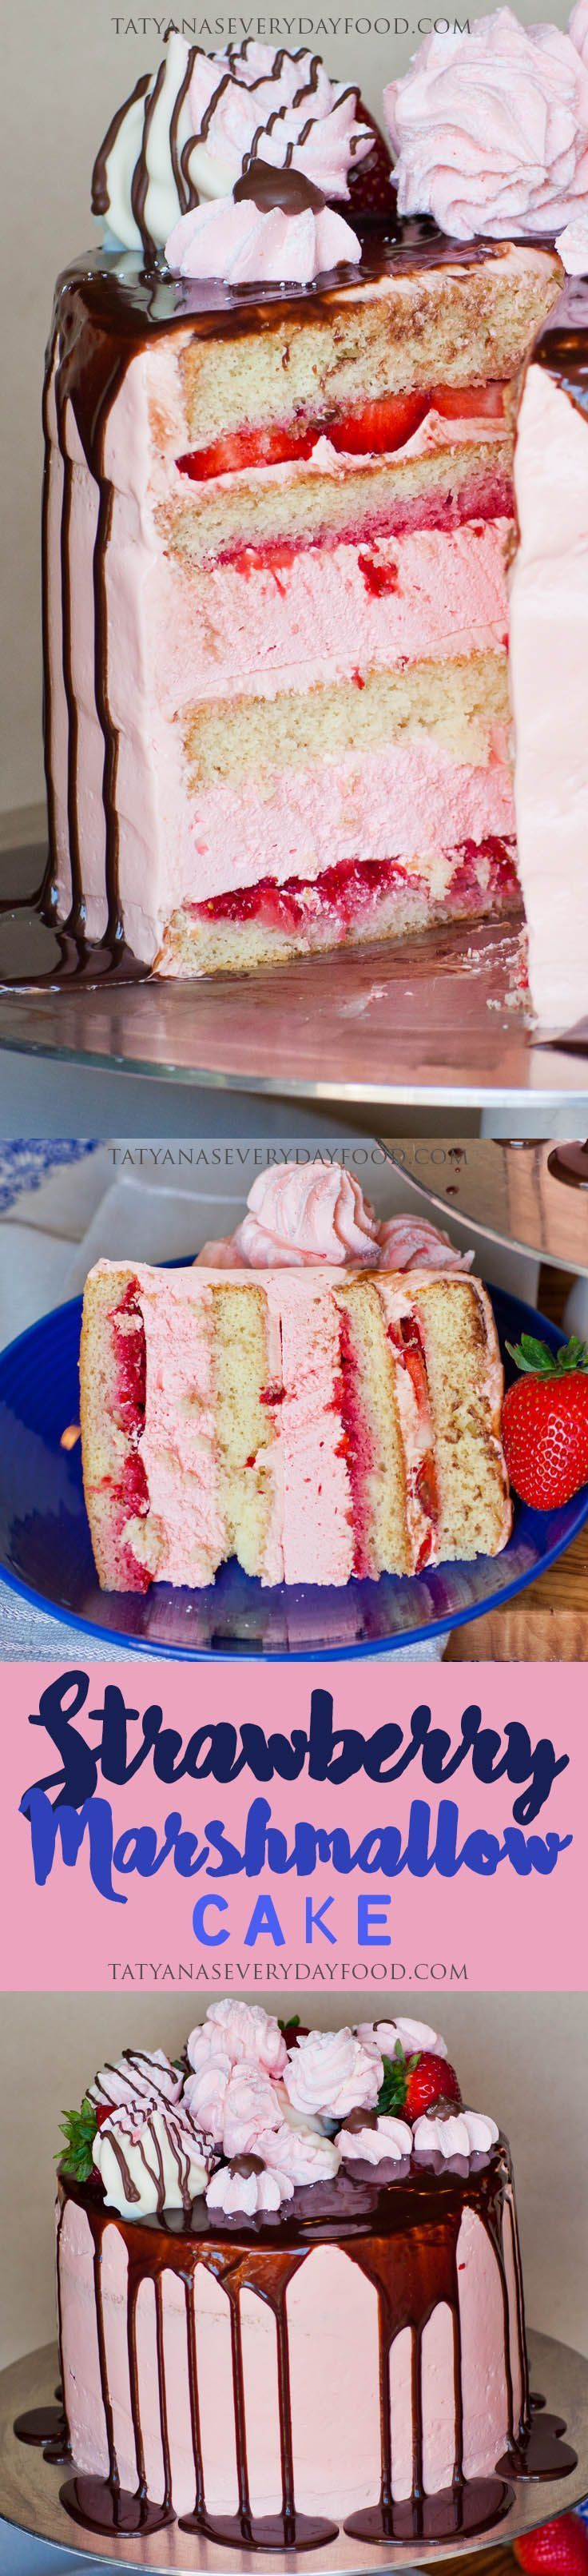 My 'Strawberry Marshmallow Cake' is the ultimate strawberry dessert! I'm using Russian 'zefir' to create pillow-y, melt-in-your-mouth marshmallow layers; adding lots of fresh strawberries between sponge cake layers and frosting the cake with a strawberry buttercream! This cake is loaded with fruity, strawberry flavor! Make sure to watch my video recipe for all the details!